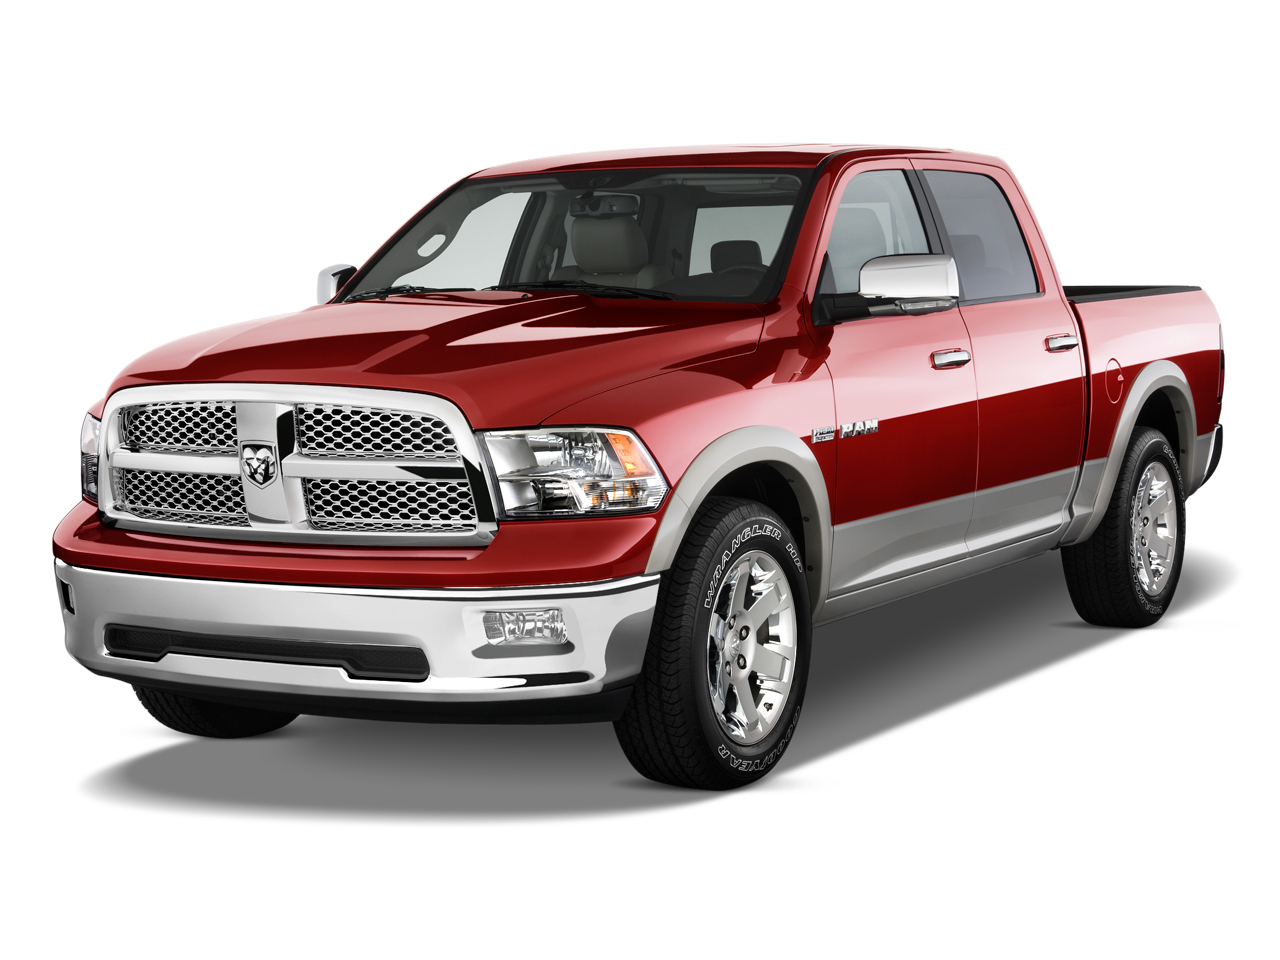 2012 ram 1500 review ratings specs prices and photos the car connection. Black Bedroom Furniture Sets. Home Design Ideas